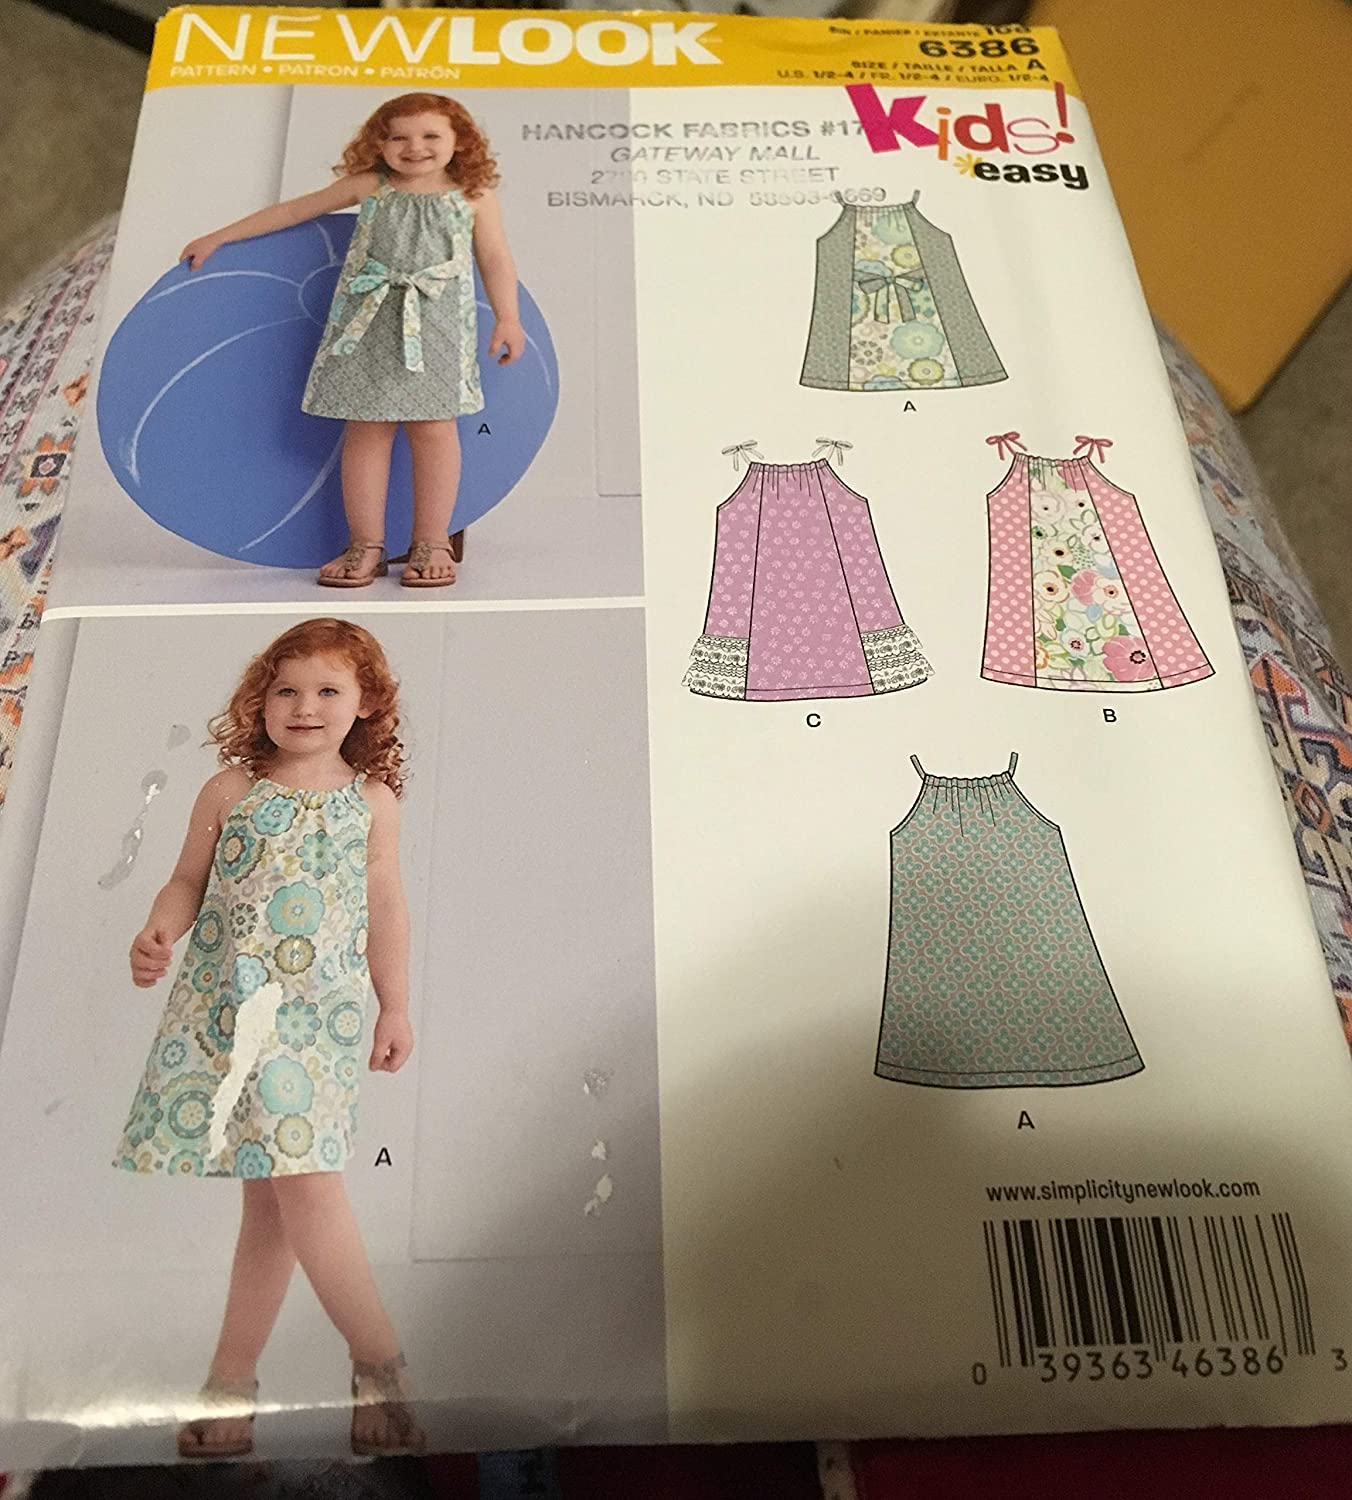 420548186e5d82 Amazon.com: New Look Girls Easy Sewing Pattern 6386 Shoulder Tie Summer  Dresses: Home & Kitchen